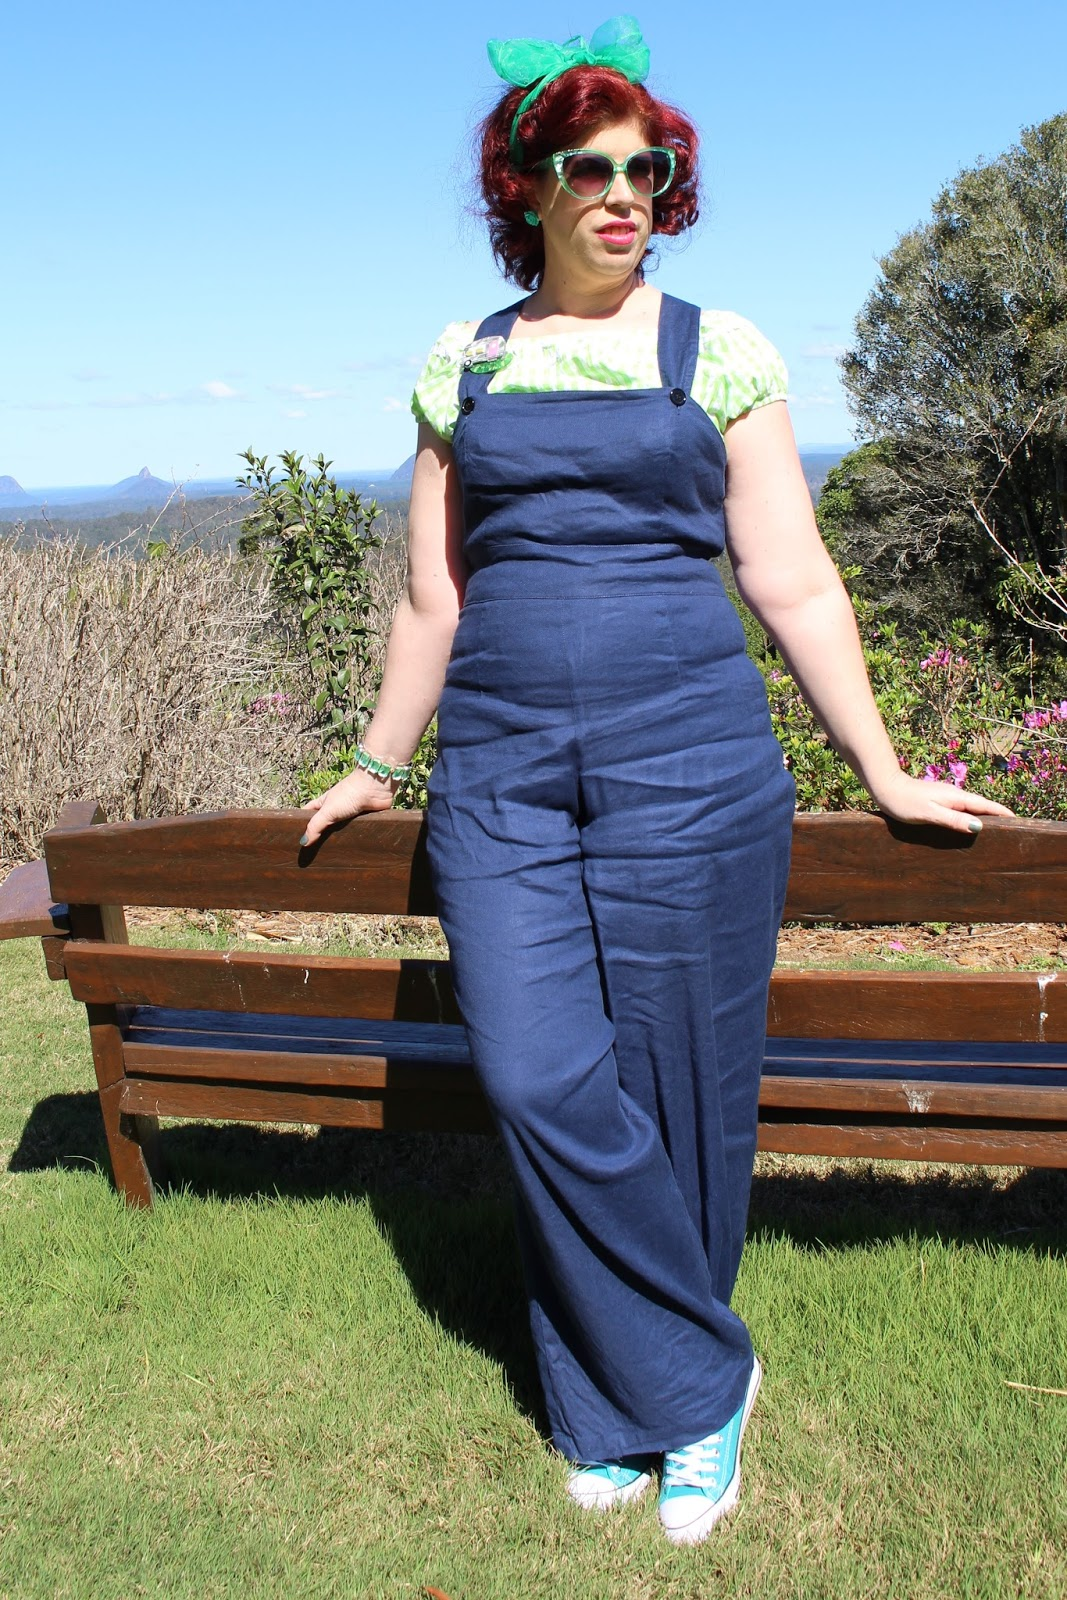 d38bbd1744 The blouse I'm wearing with my dungarees is the Caterina Green Gingham top  by Lindybop This top has Ric-rac detailing along the bottom and top, ...